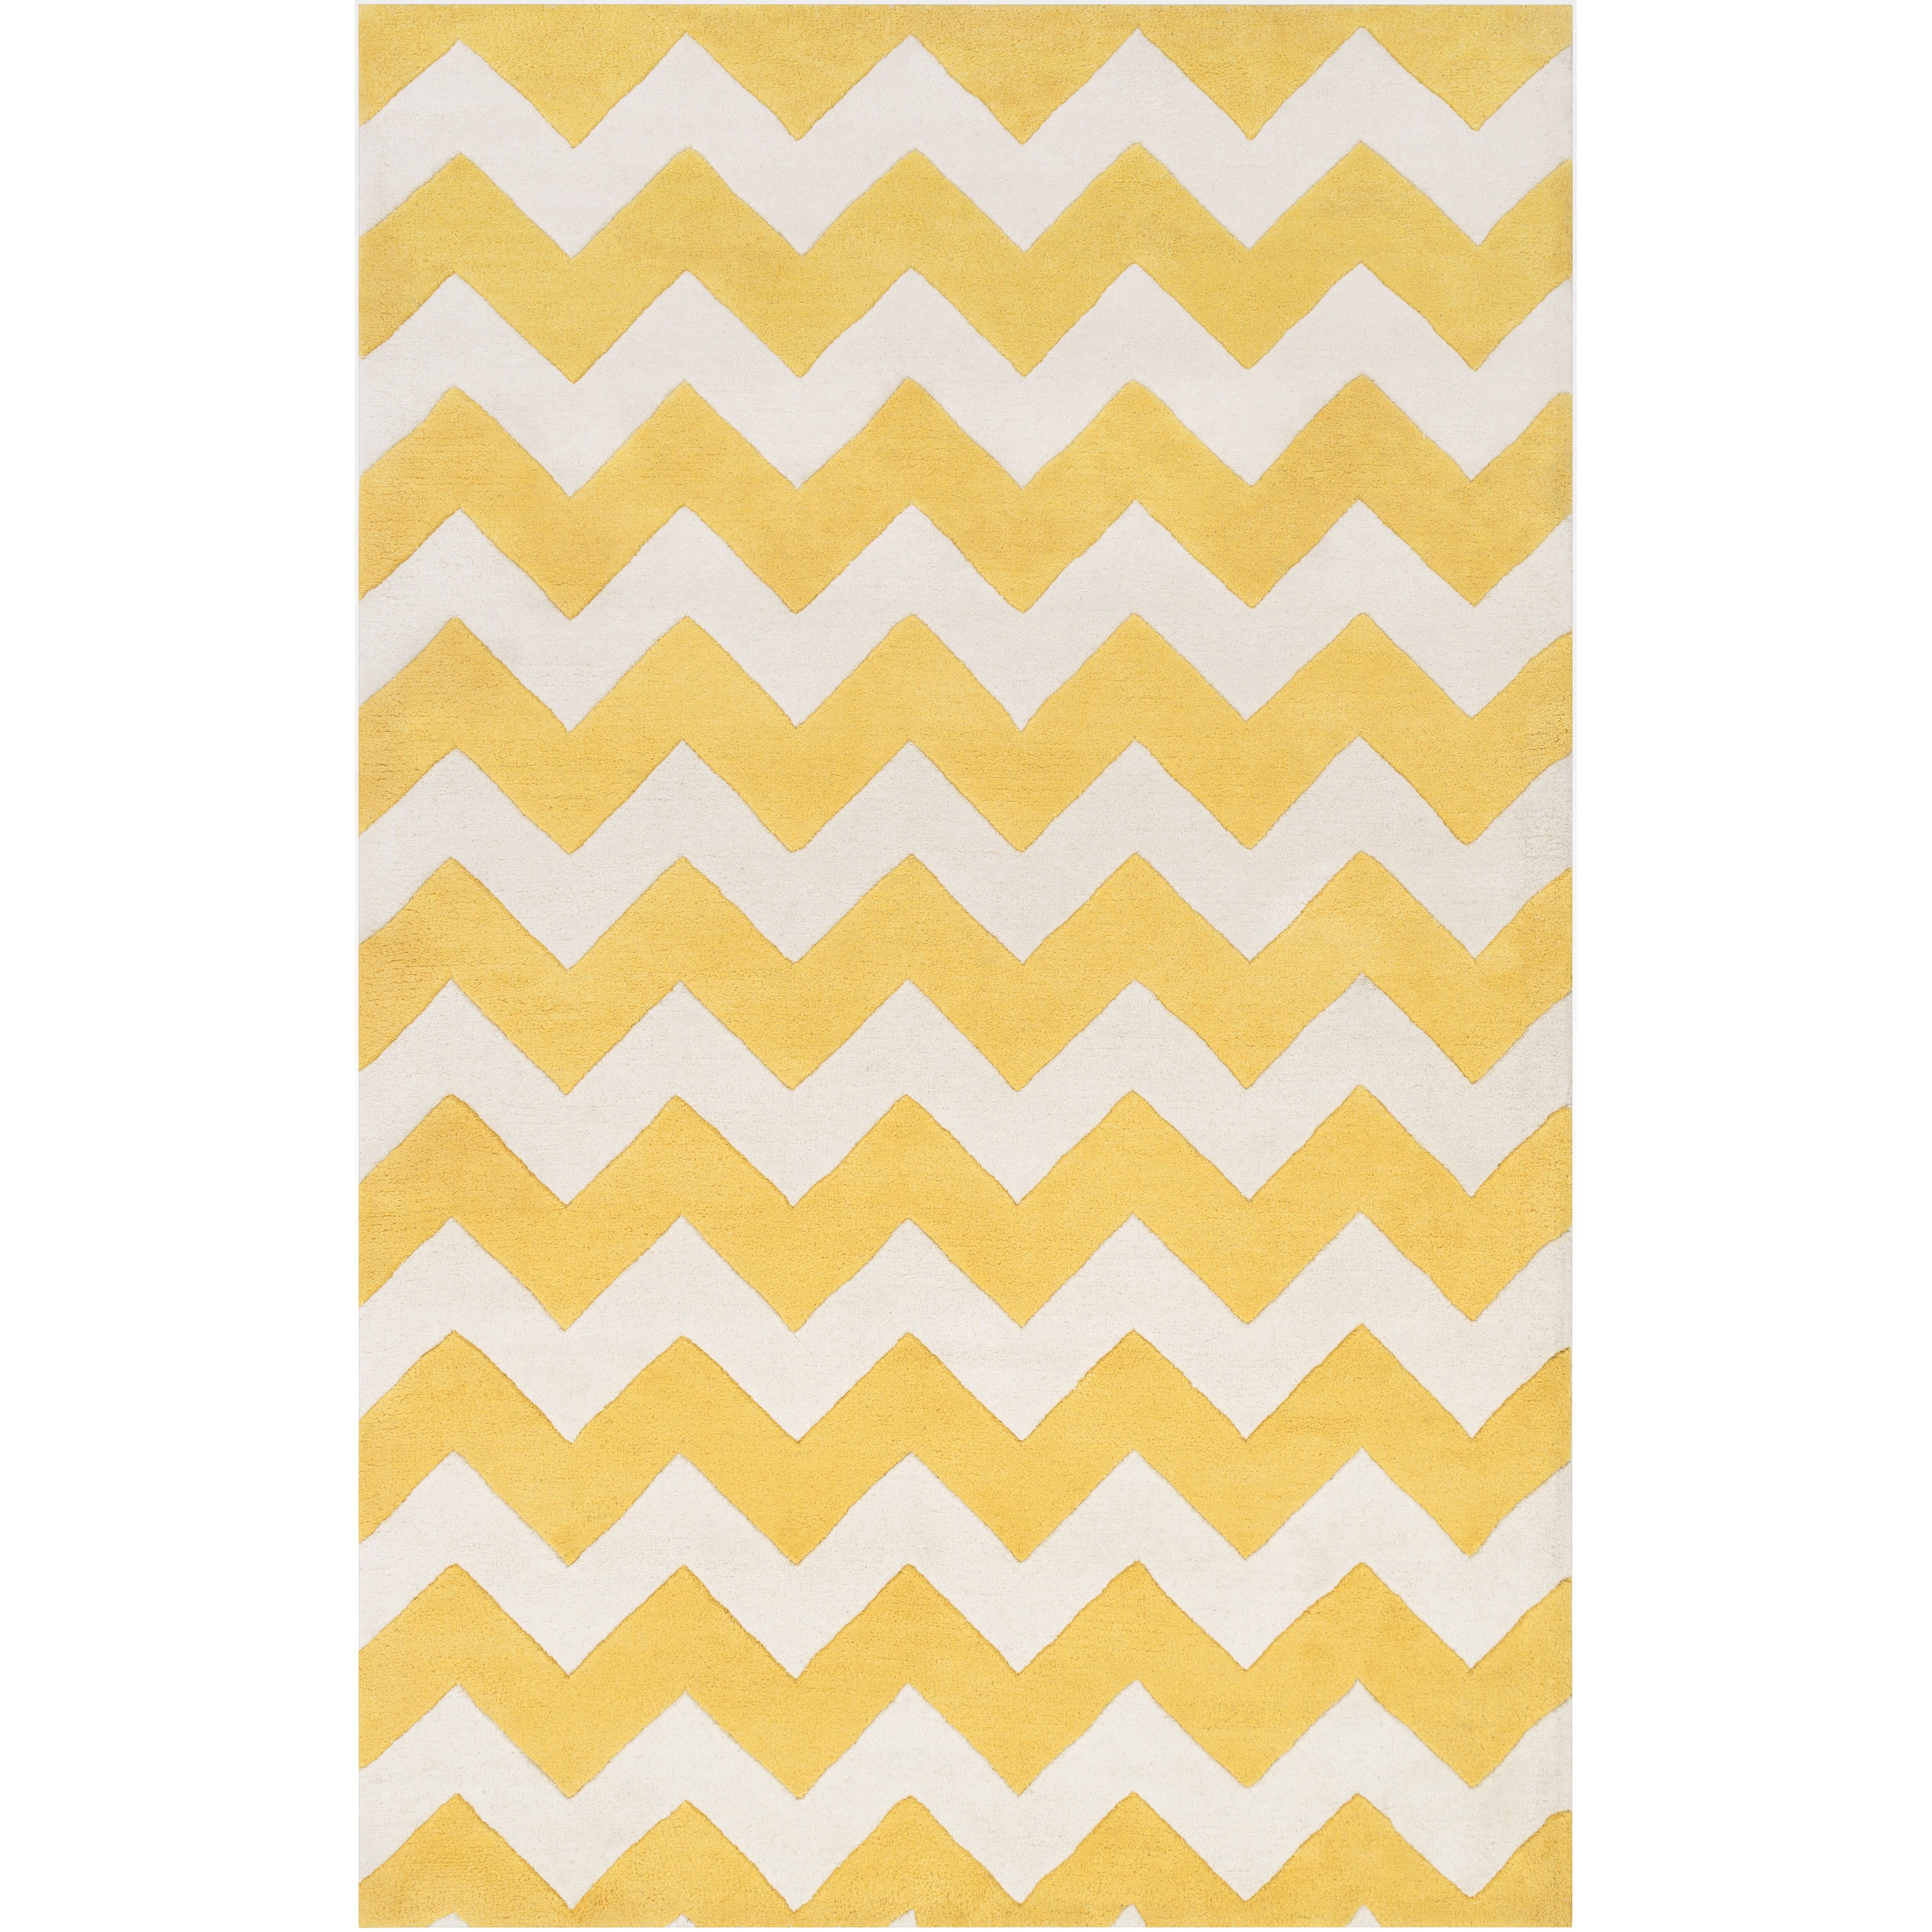 Turquoise curtains bedroom teal bedroom curtains and teal nursery - Artistic Weavers Transit Yellow Ivory Chevron Penelope